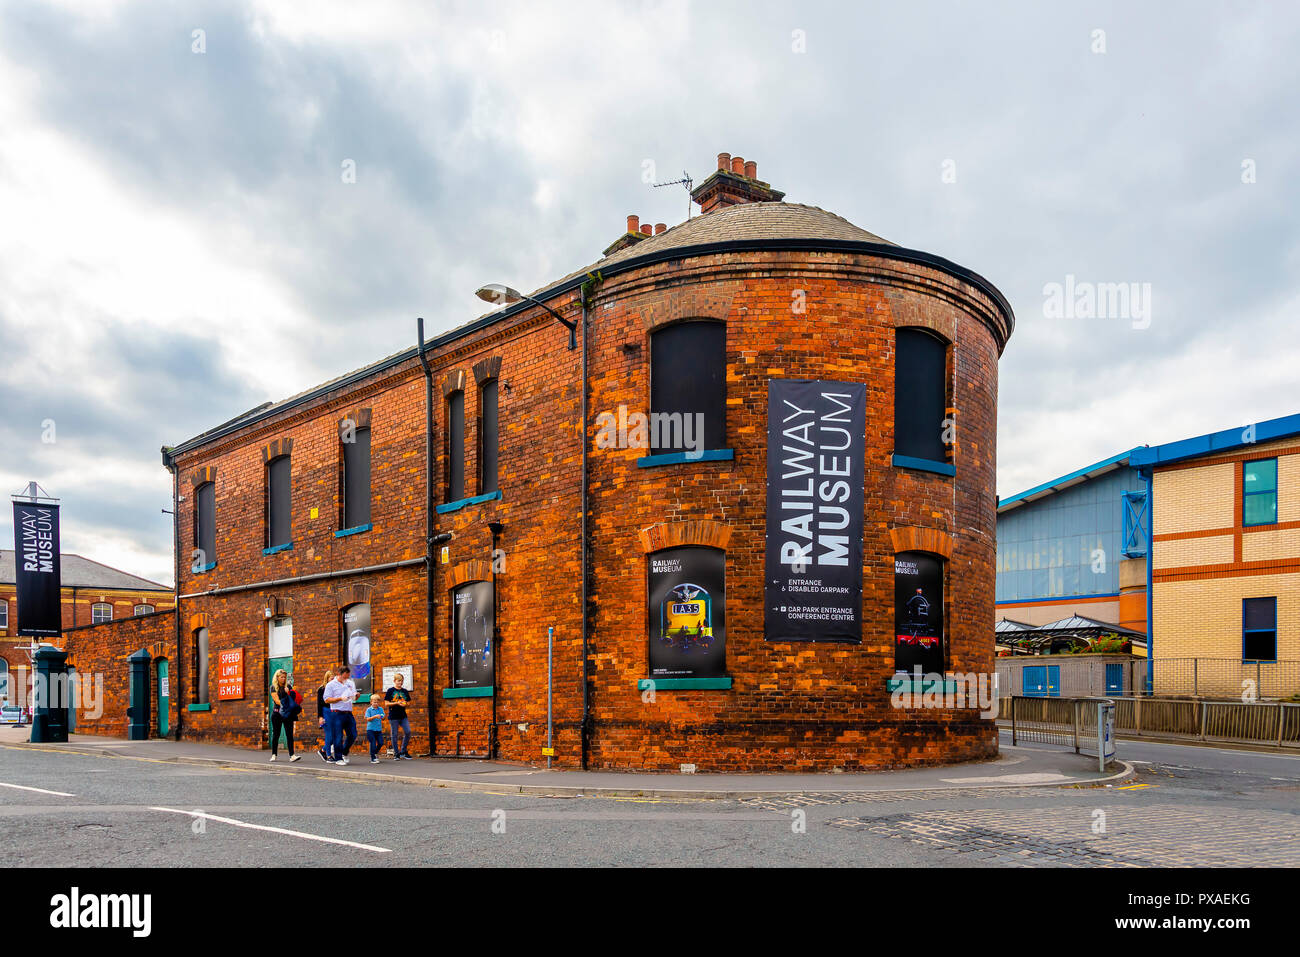 York Railway Museum building exterior with signages - Stock Image